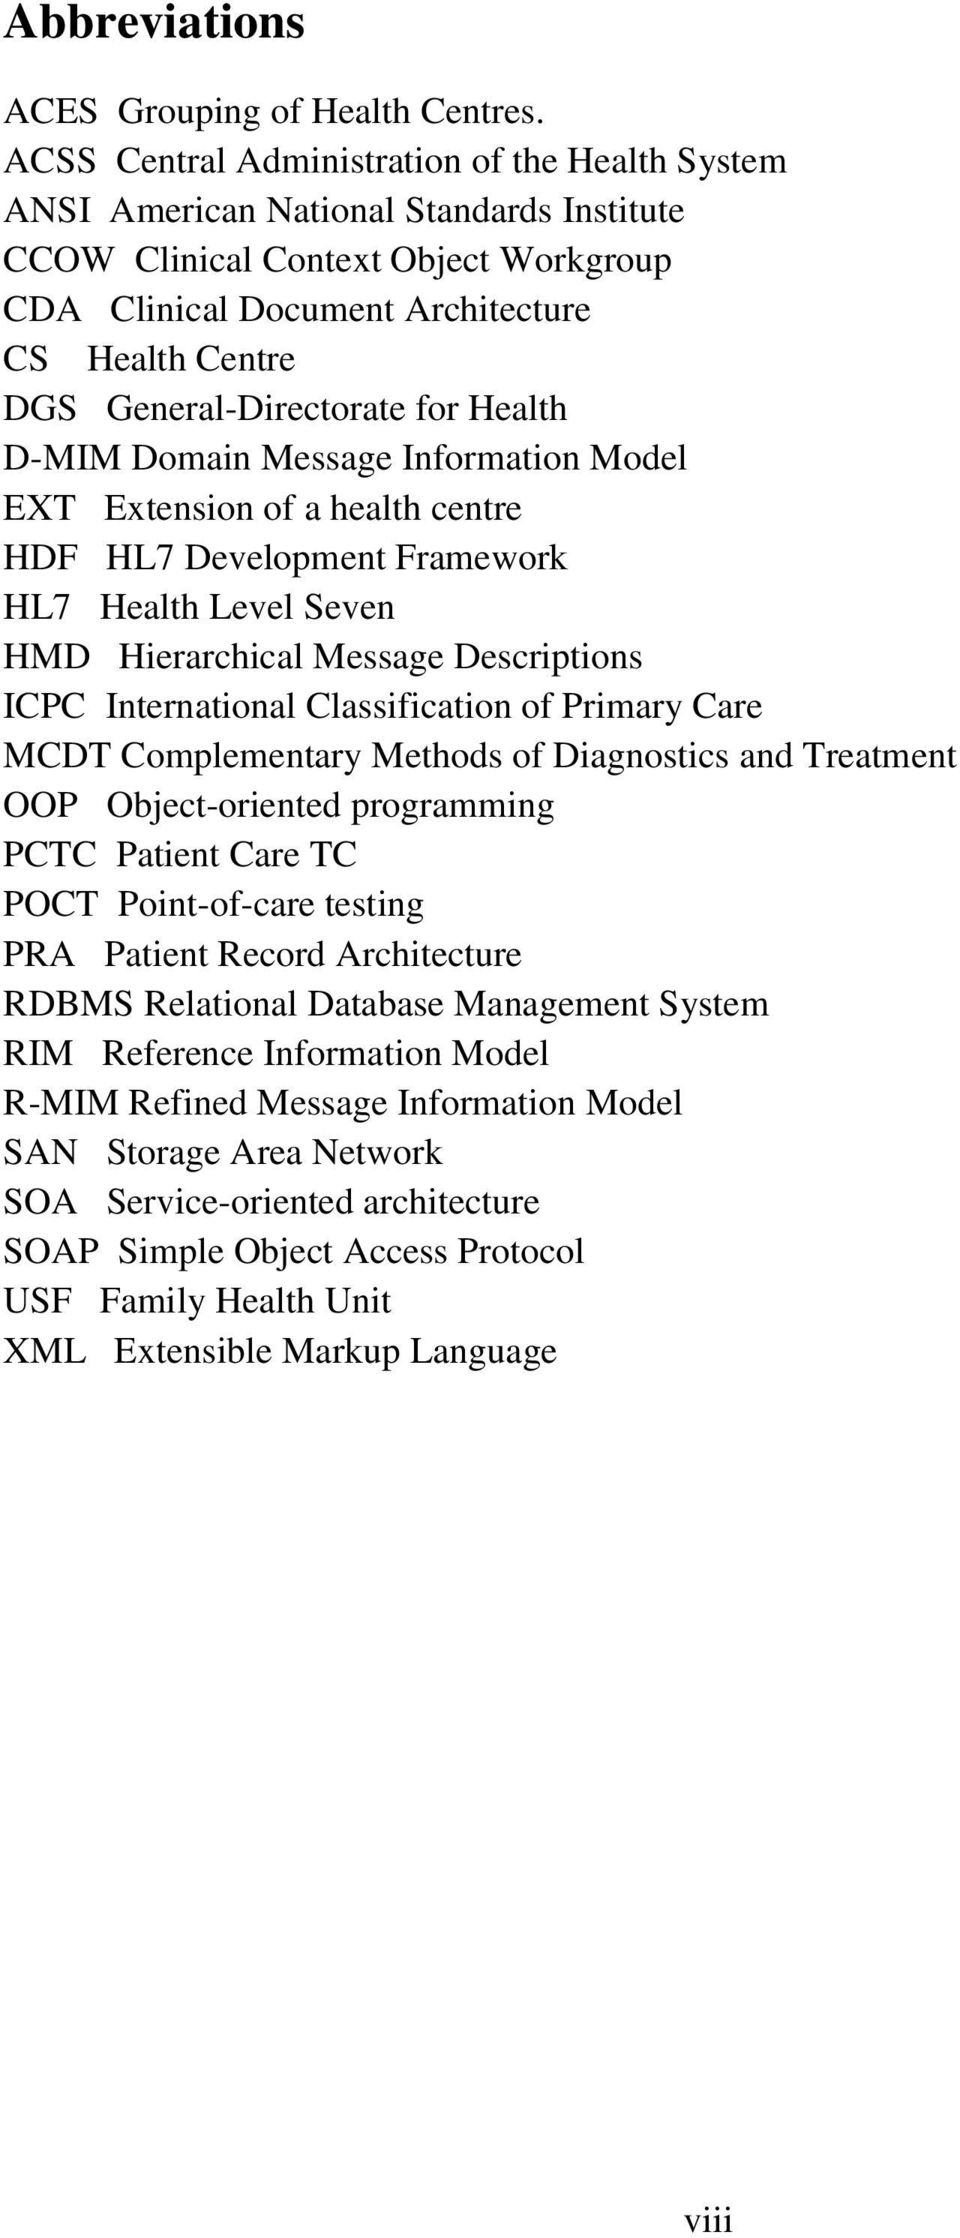 General-Directorate for Health D-MIM Domain Message Information Model EXT Extension of a health centre HDF HL7 Development Framework HL7 Health Level Seven HMD Hierarchical Message Descriptions ICPC